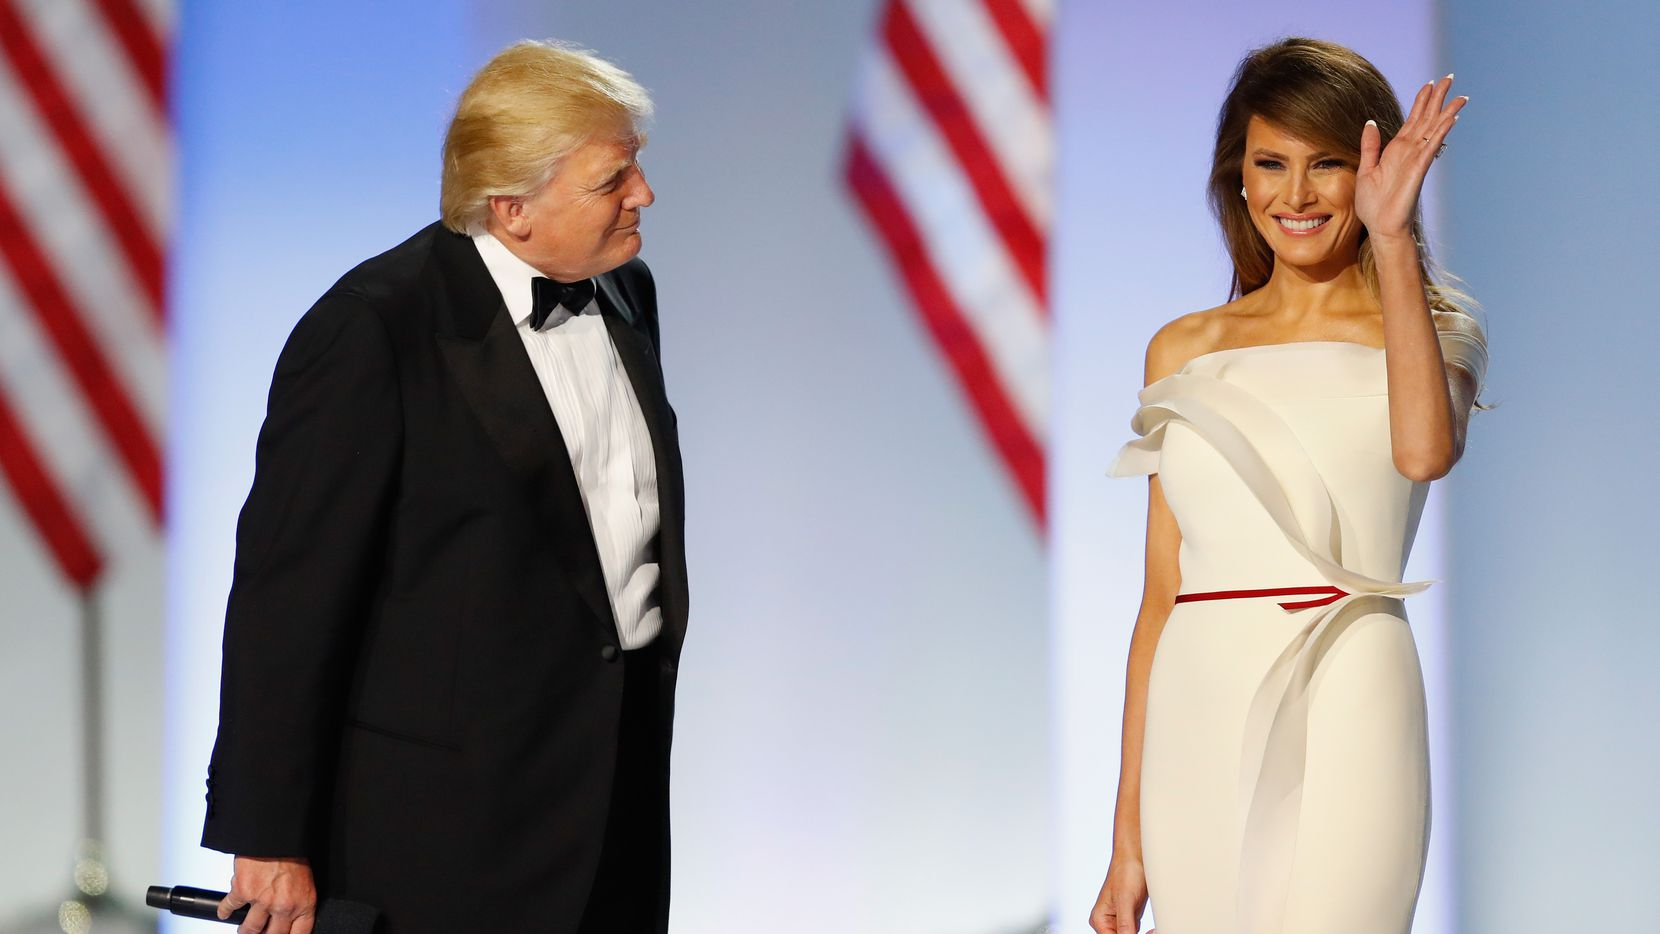 WASHINGTON, DC - JANUARY 20:  President Donald Trump introduces first lady Melania Trump at the Freedom Inaugural Ball at the Washington Convention Center January 20, 2017 in Washington, D.C.  President Trump was sworn today as the 45th U.S. President.  (Photo by Aaron P. Bernstein/Getty Images) *** BESTPIX ***